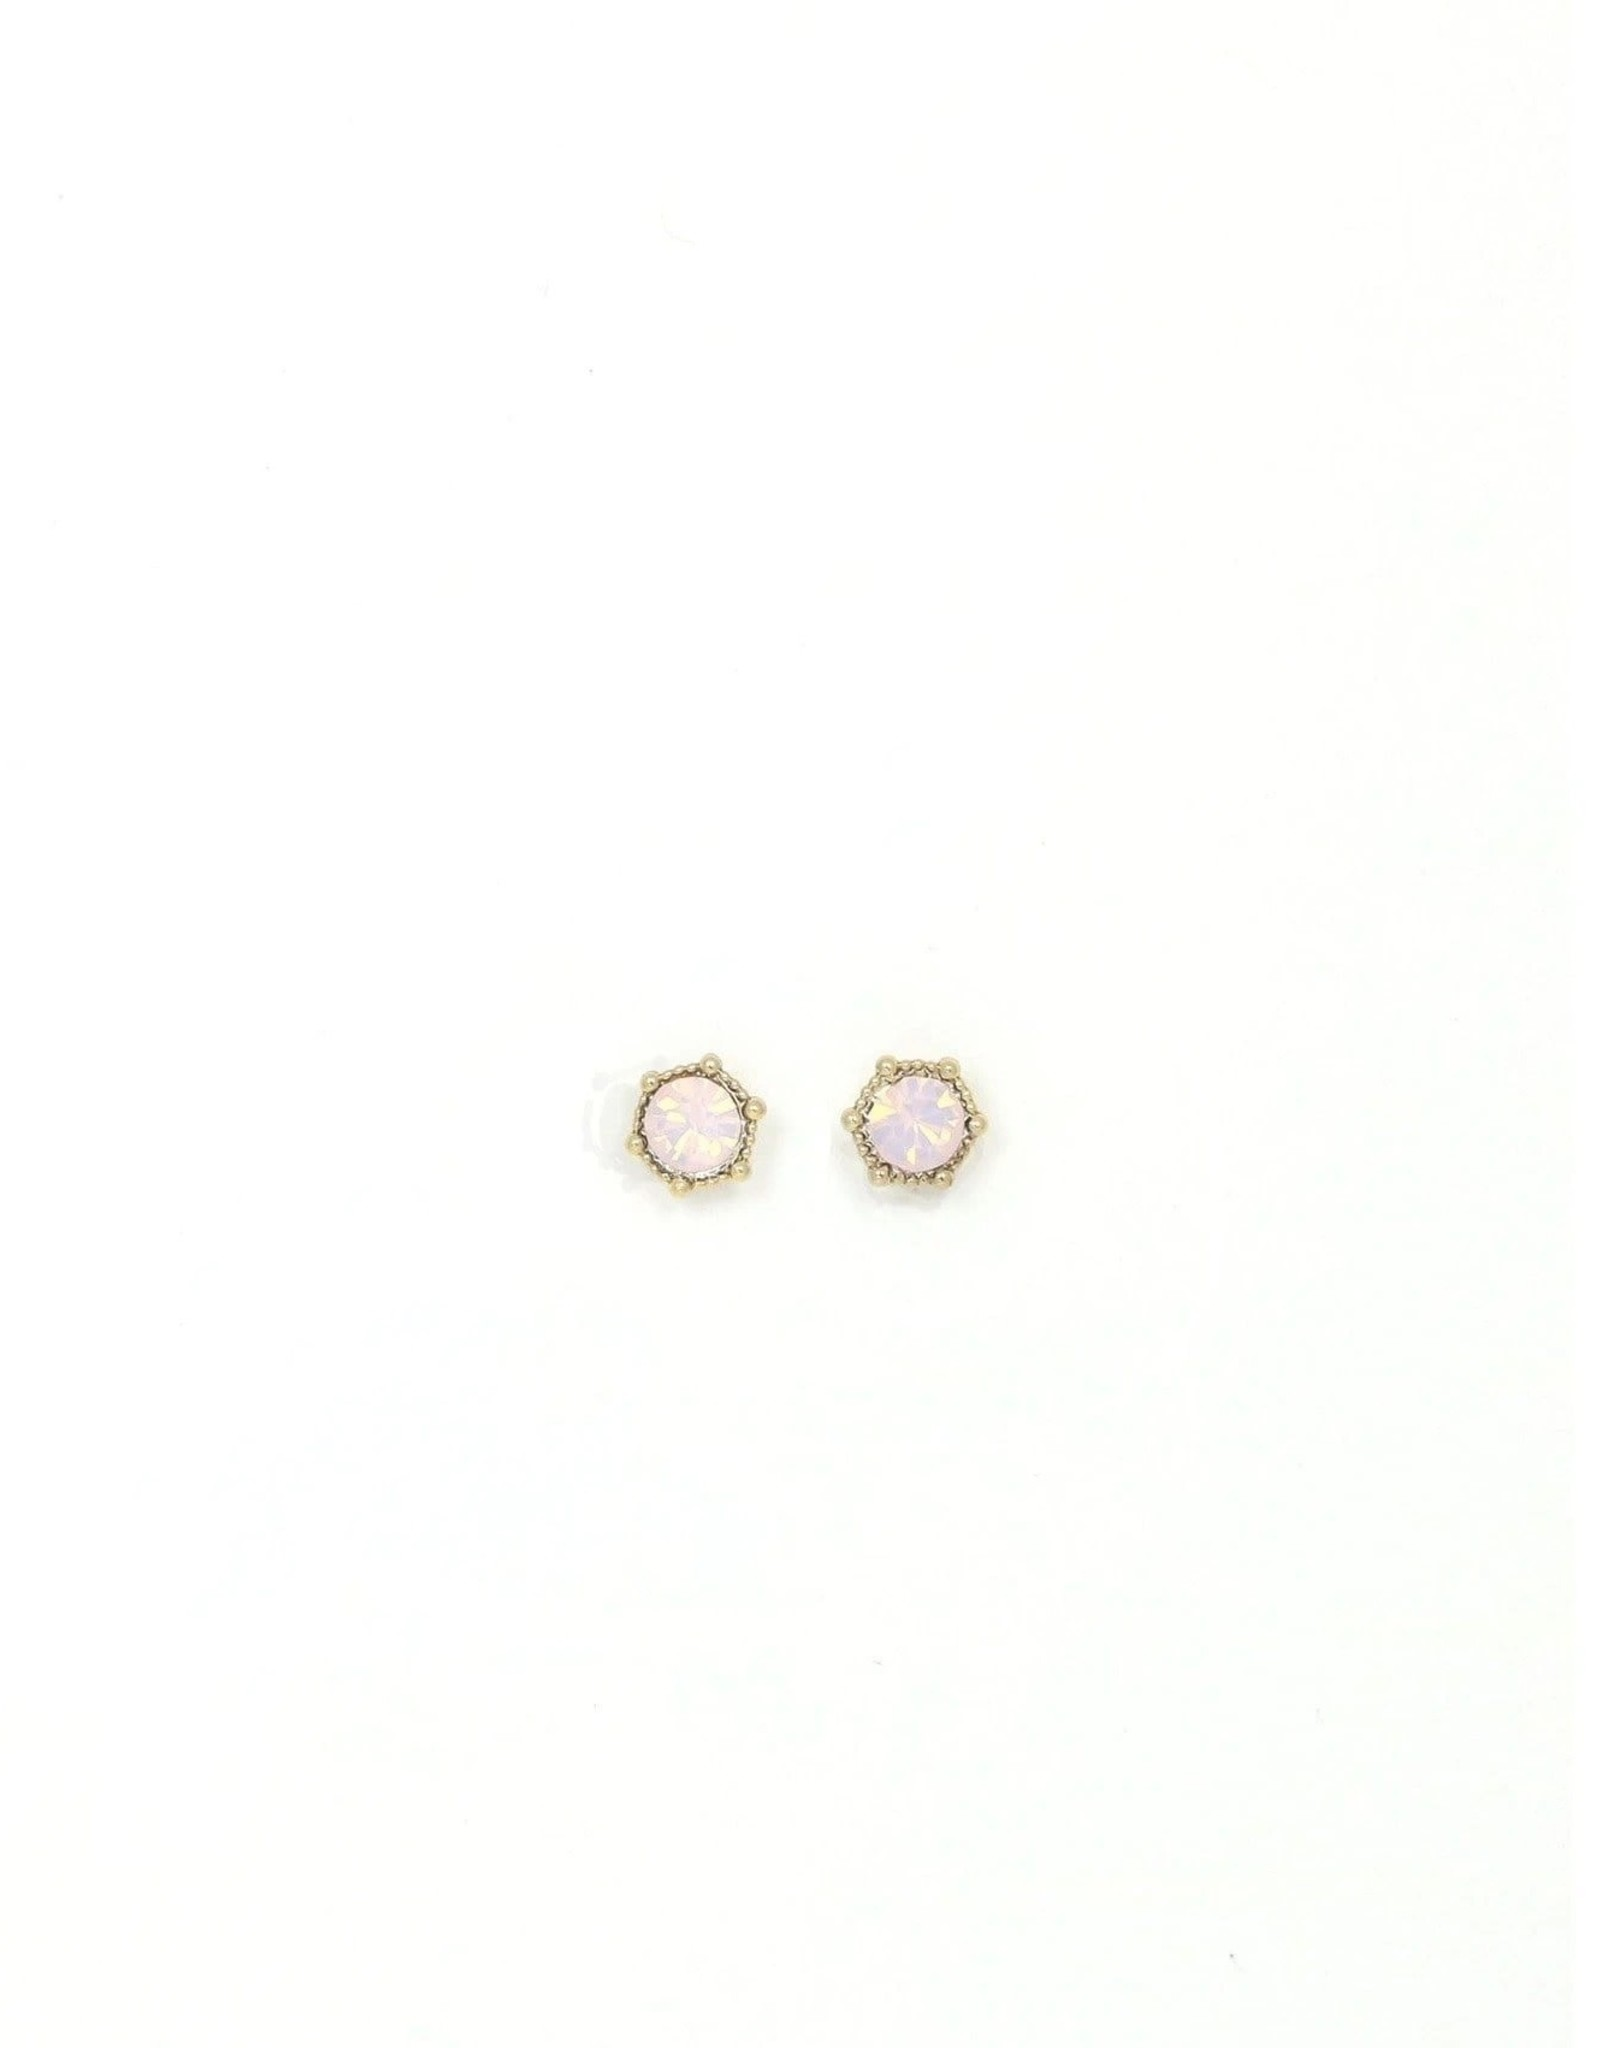 Earring, Astrid Stud, Pink Opal, Sterling Silver Posts, Gold-Plated Brass, Swarovski Crystals